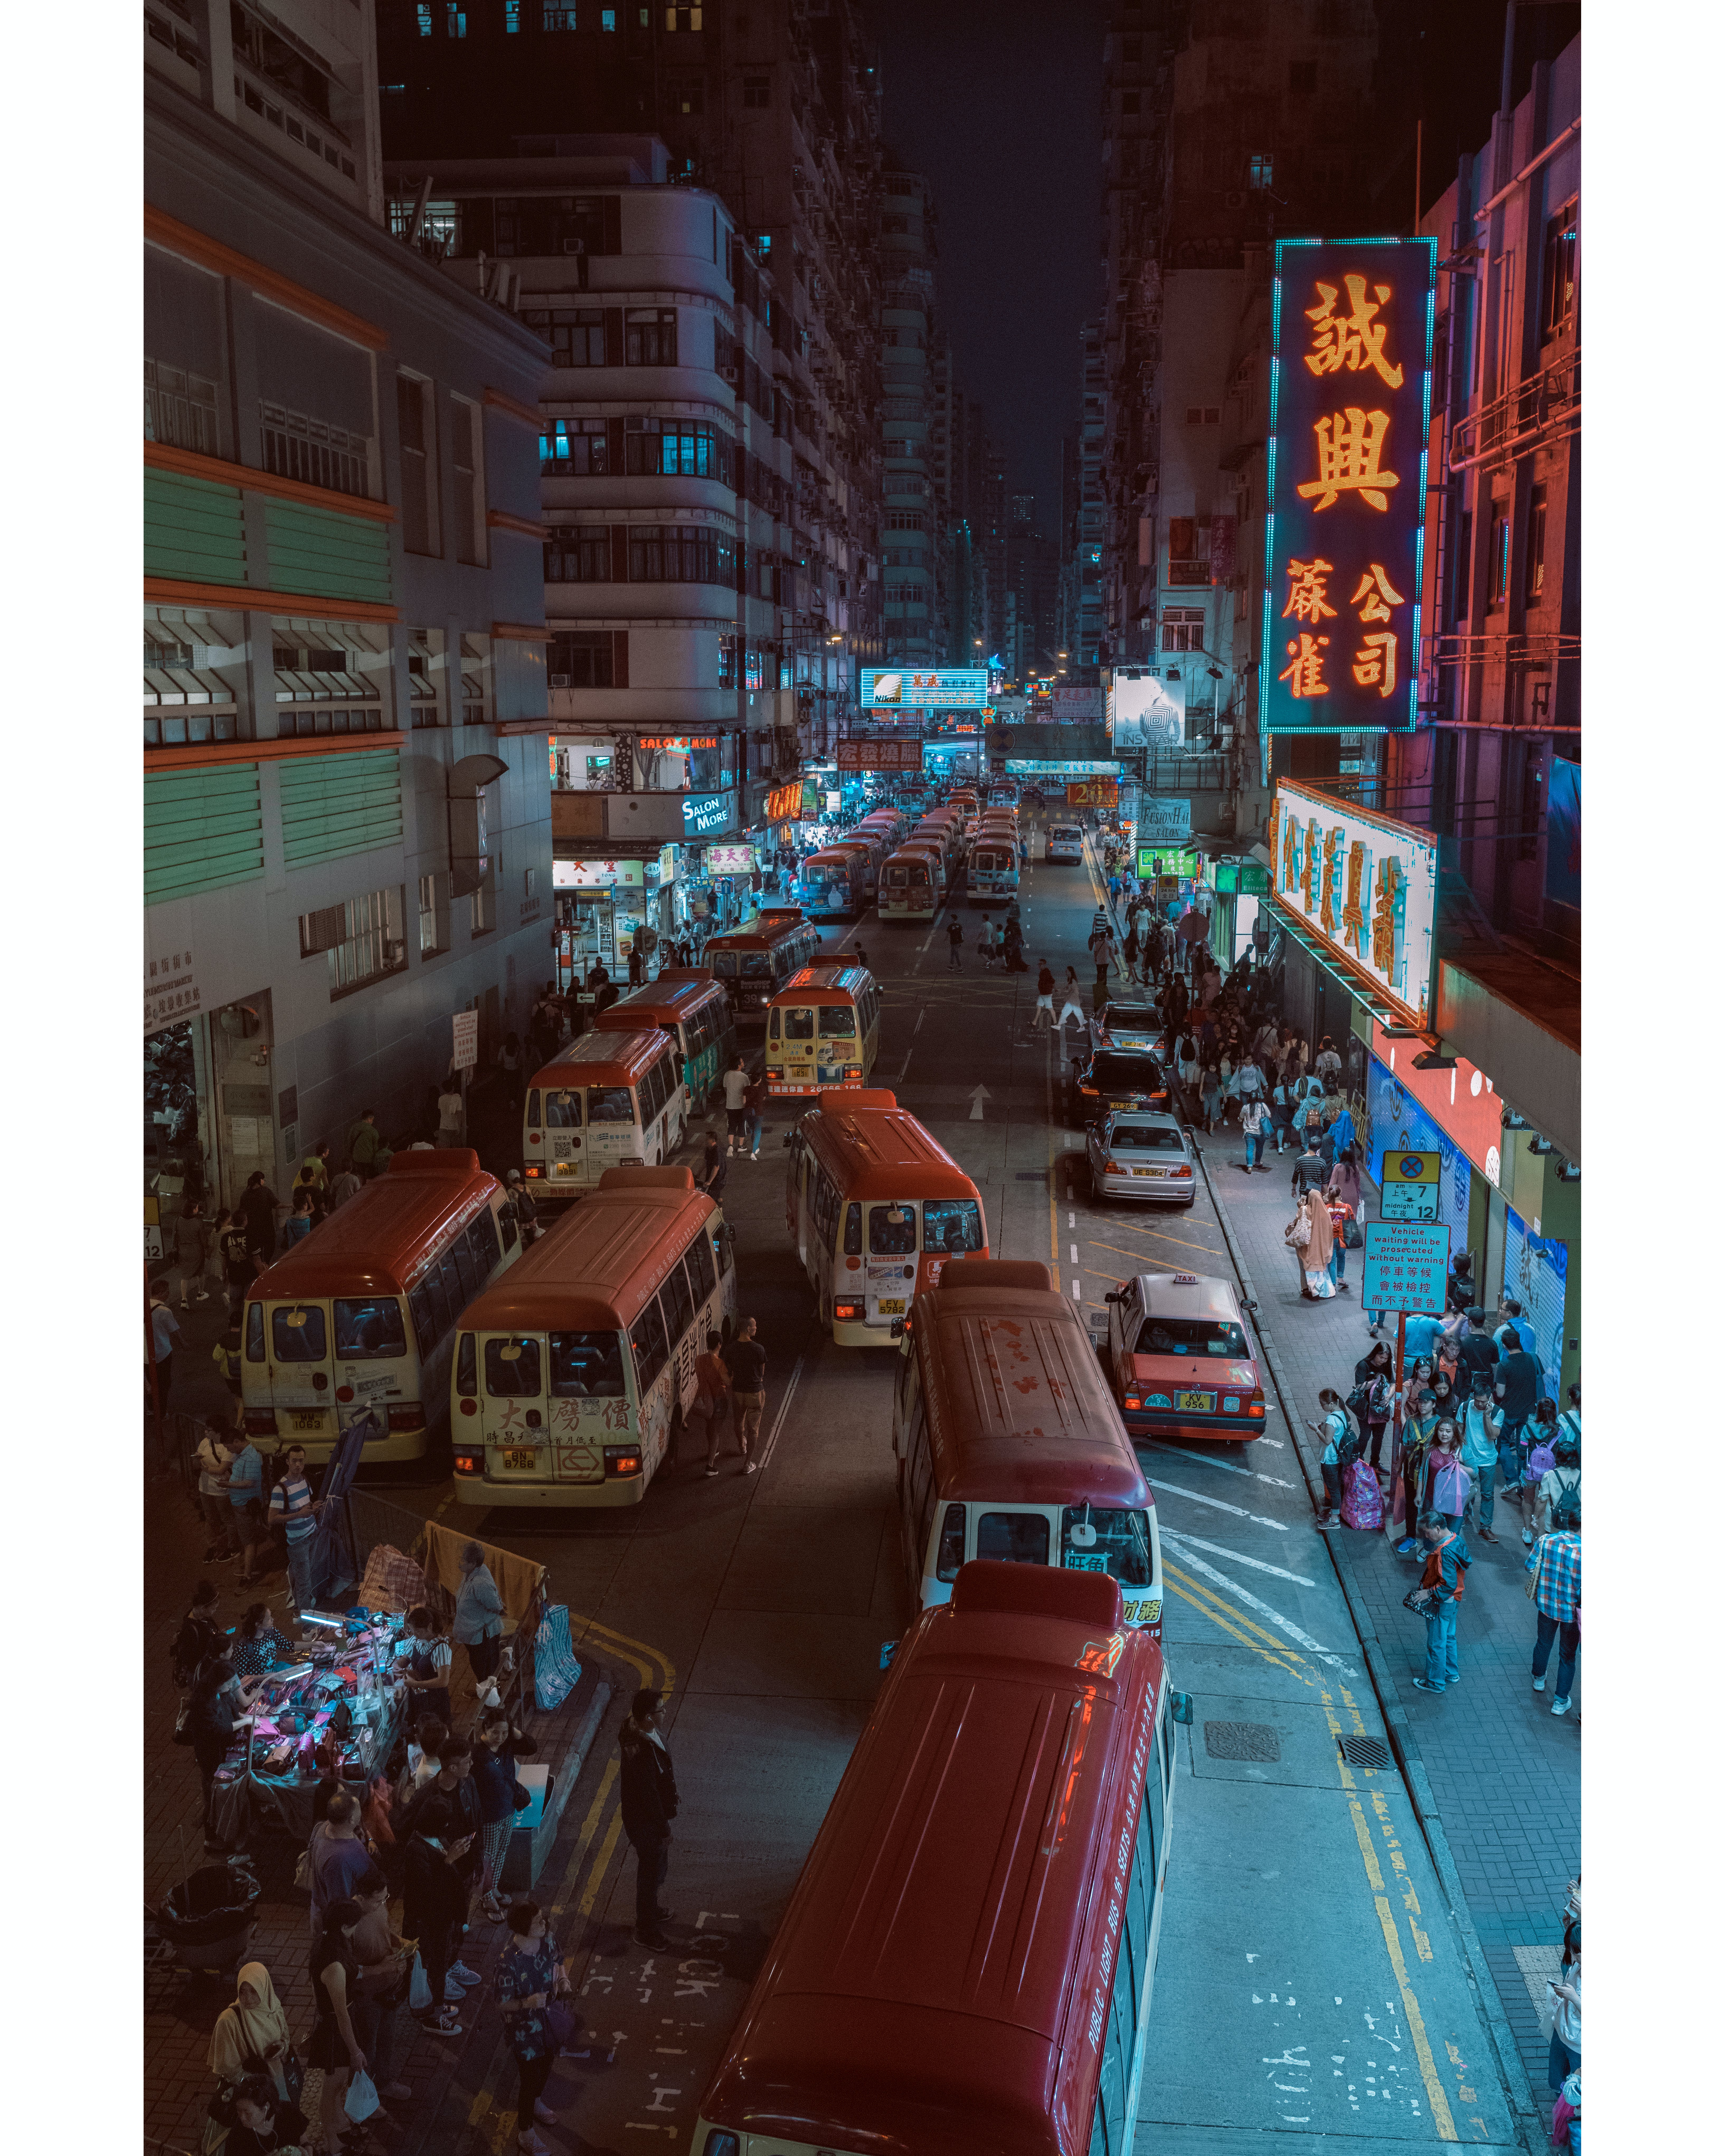 Aerial Photography Of Busy Street With People During Night Time